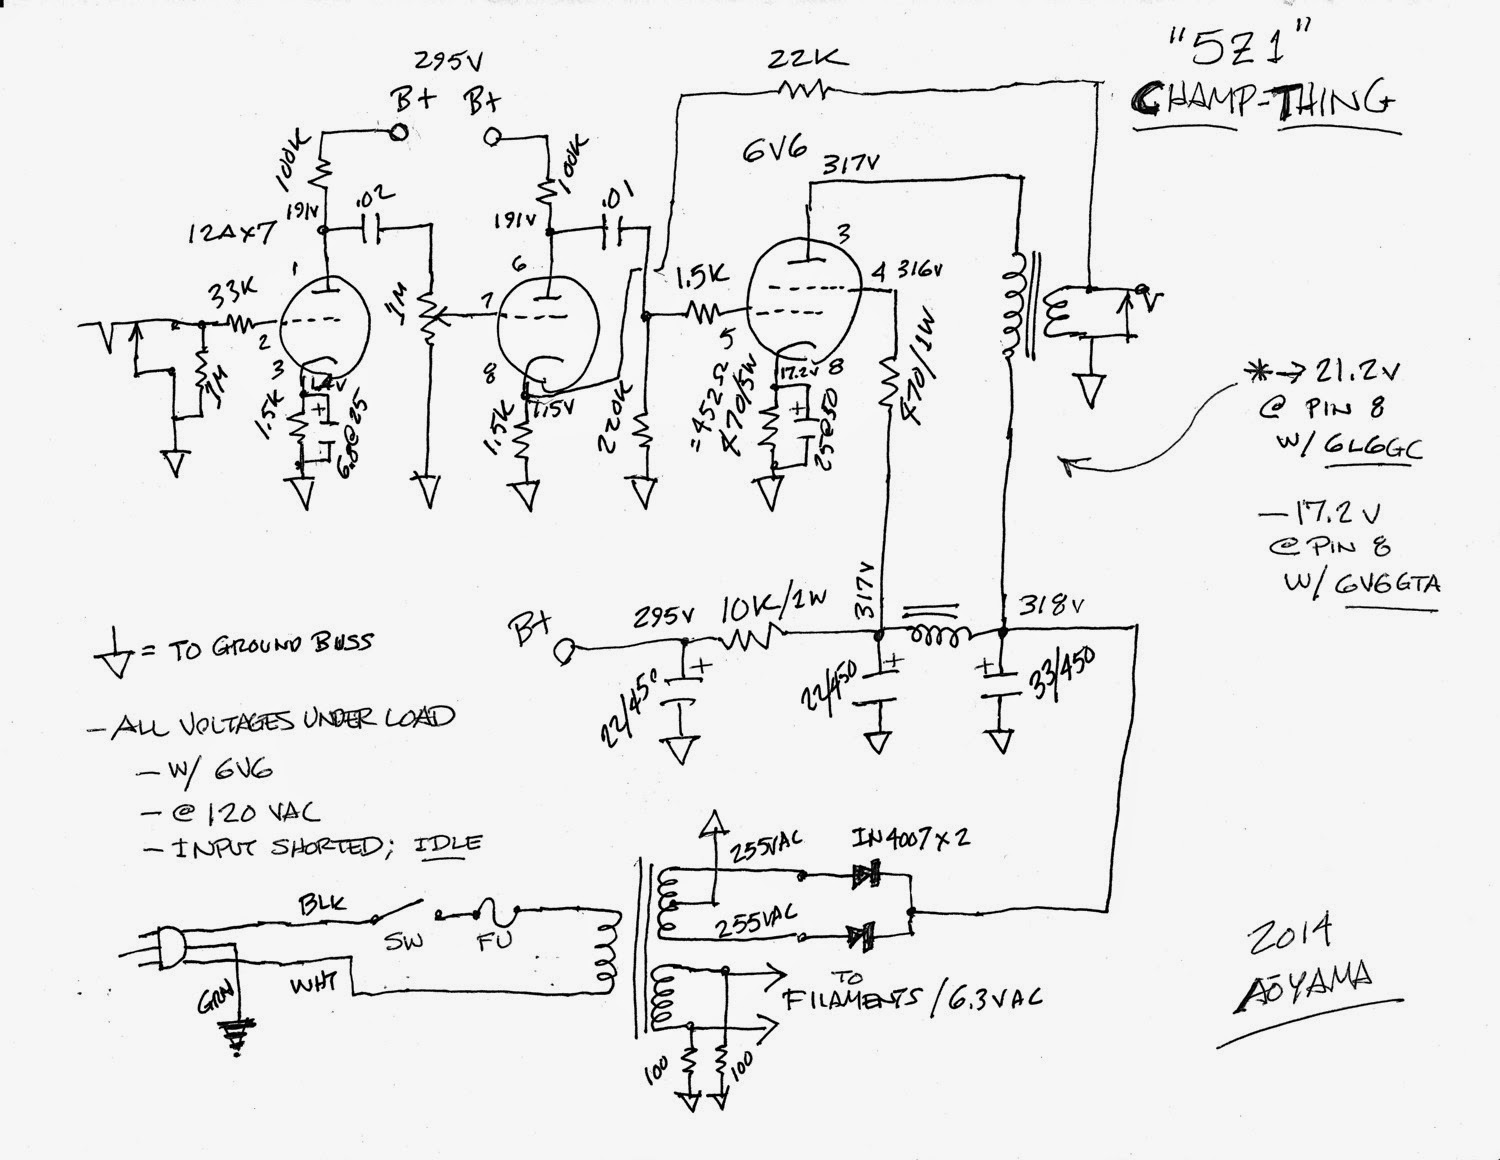 99+Cent+Champ+Schematic origami night lamp the 99 cent champ amp, part 3 5f1 wiring diagram at gsmportal.co